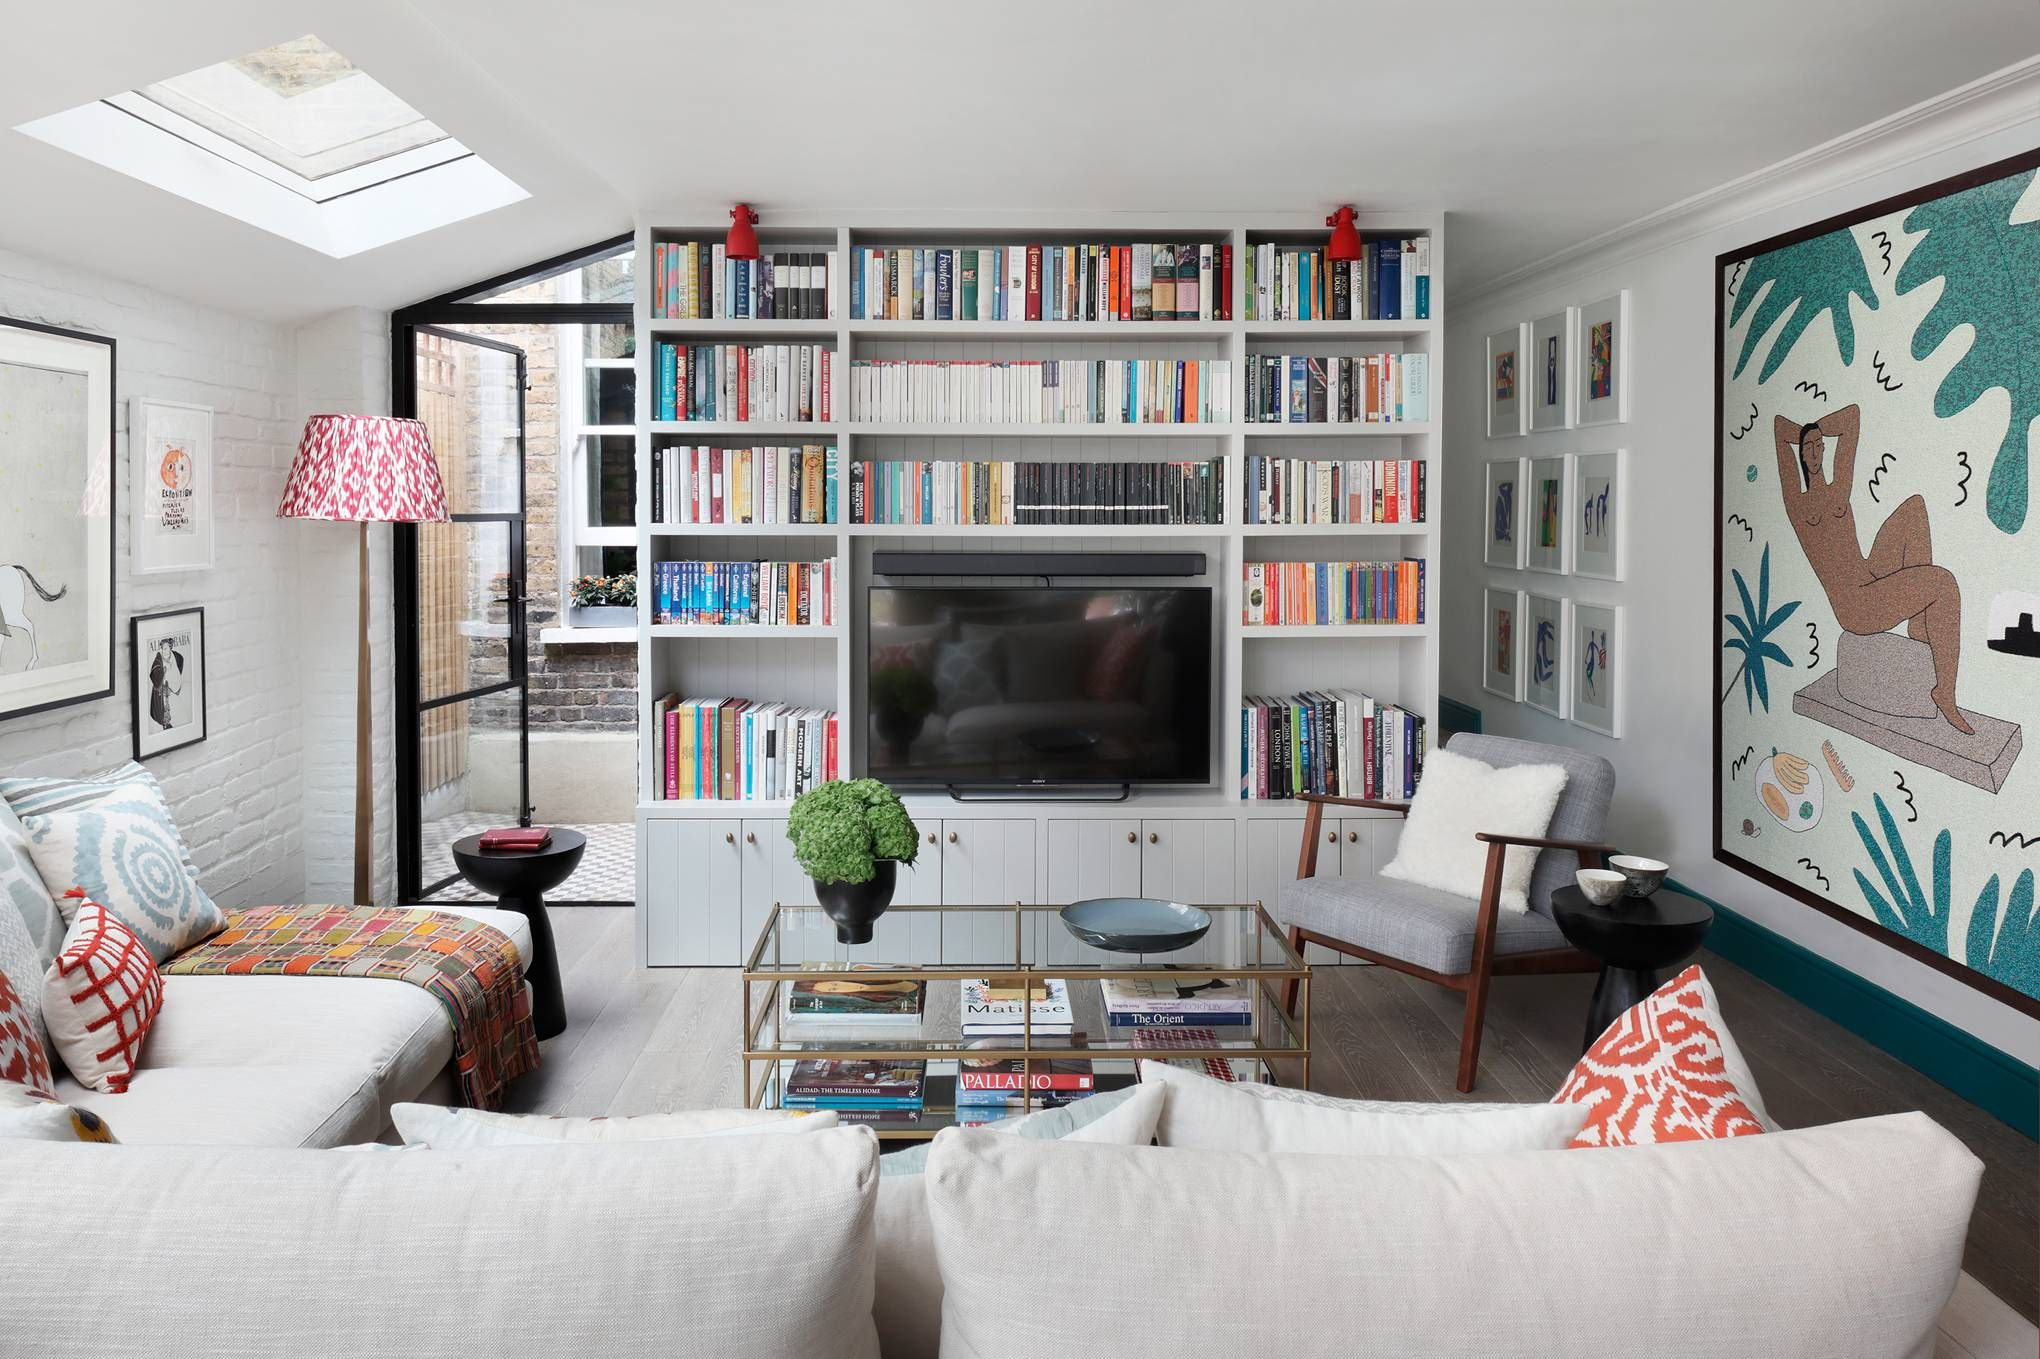 A young designer's artful renovation of the ground floor ...